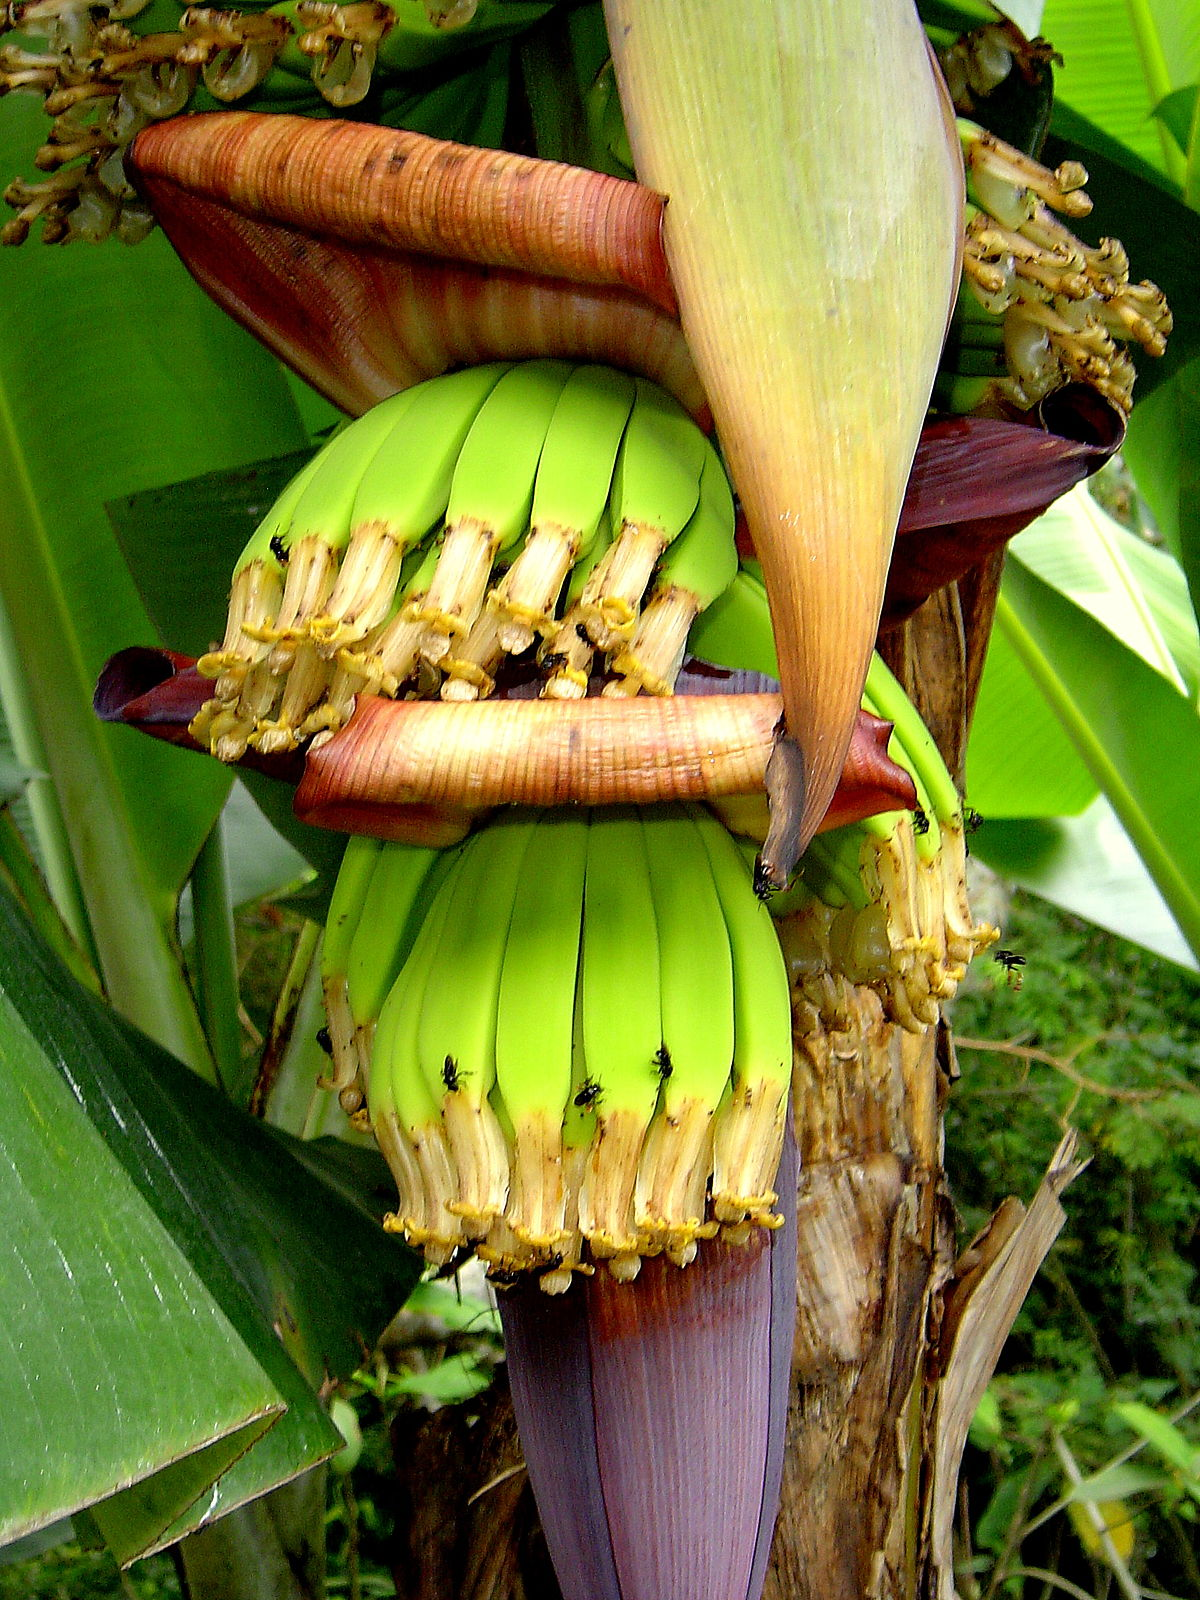 Banana production in the Caribbean